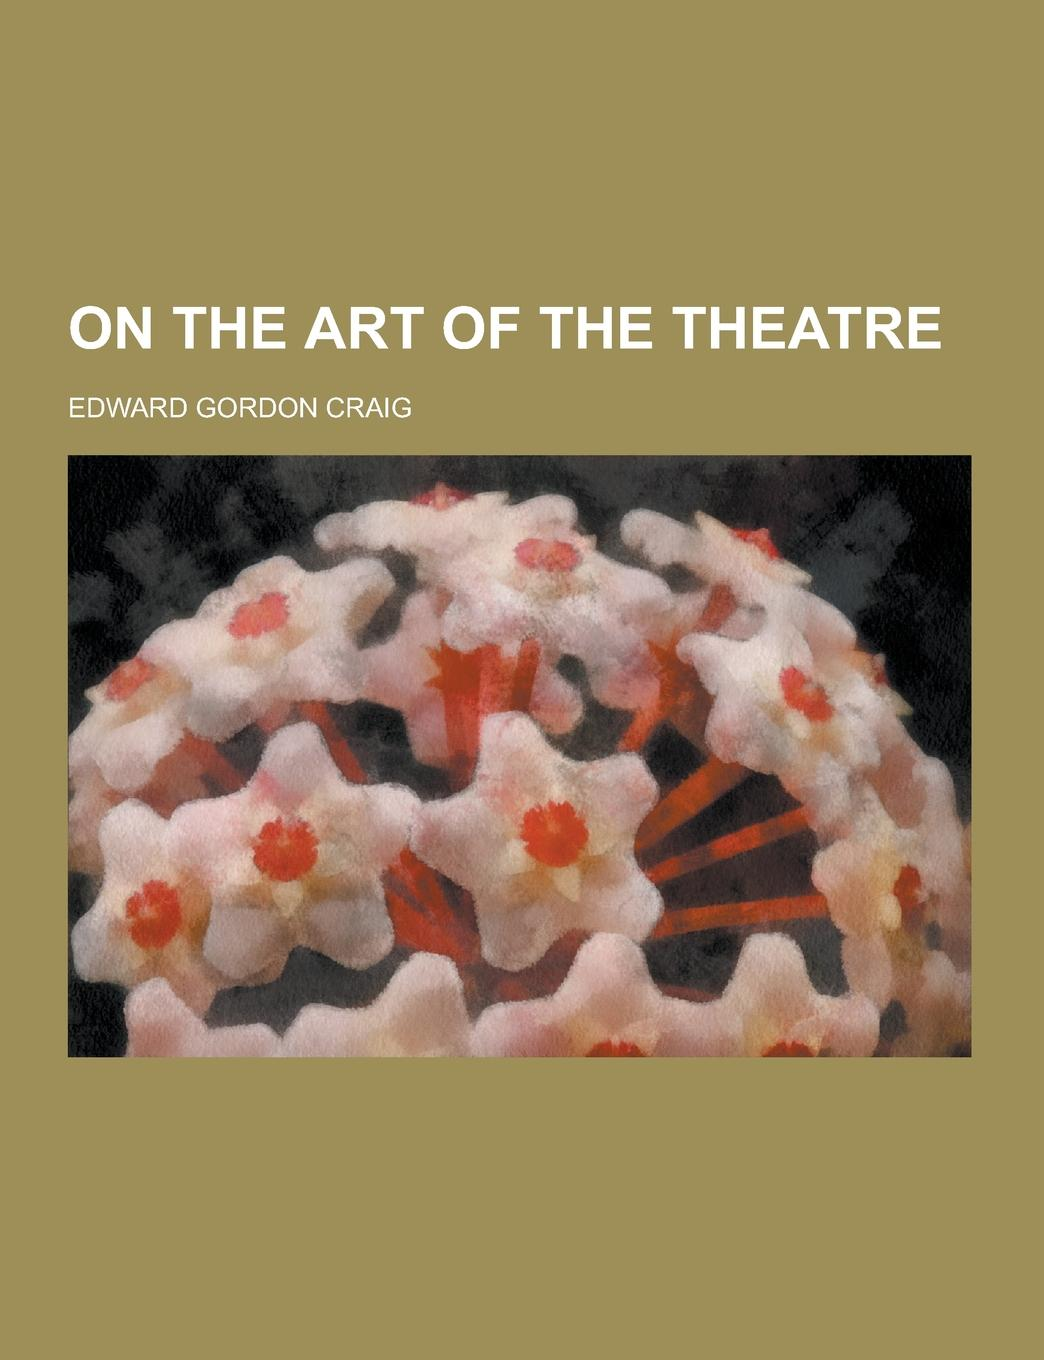 купить Edward Gordon Craig On the Art of the Theatre по цене 2327 рублей